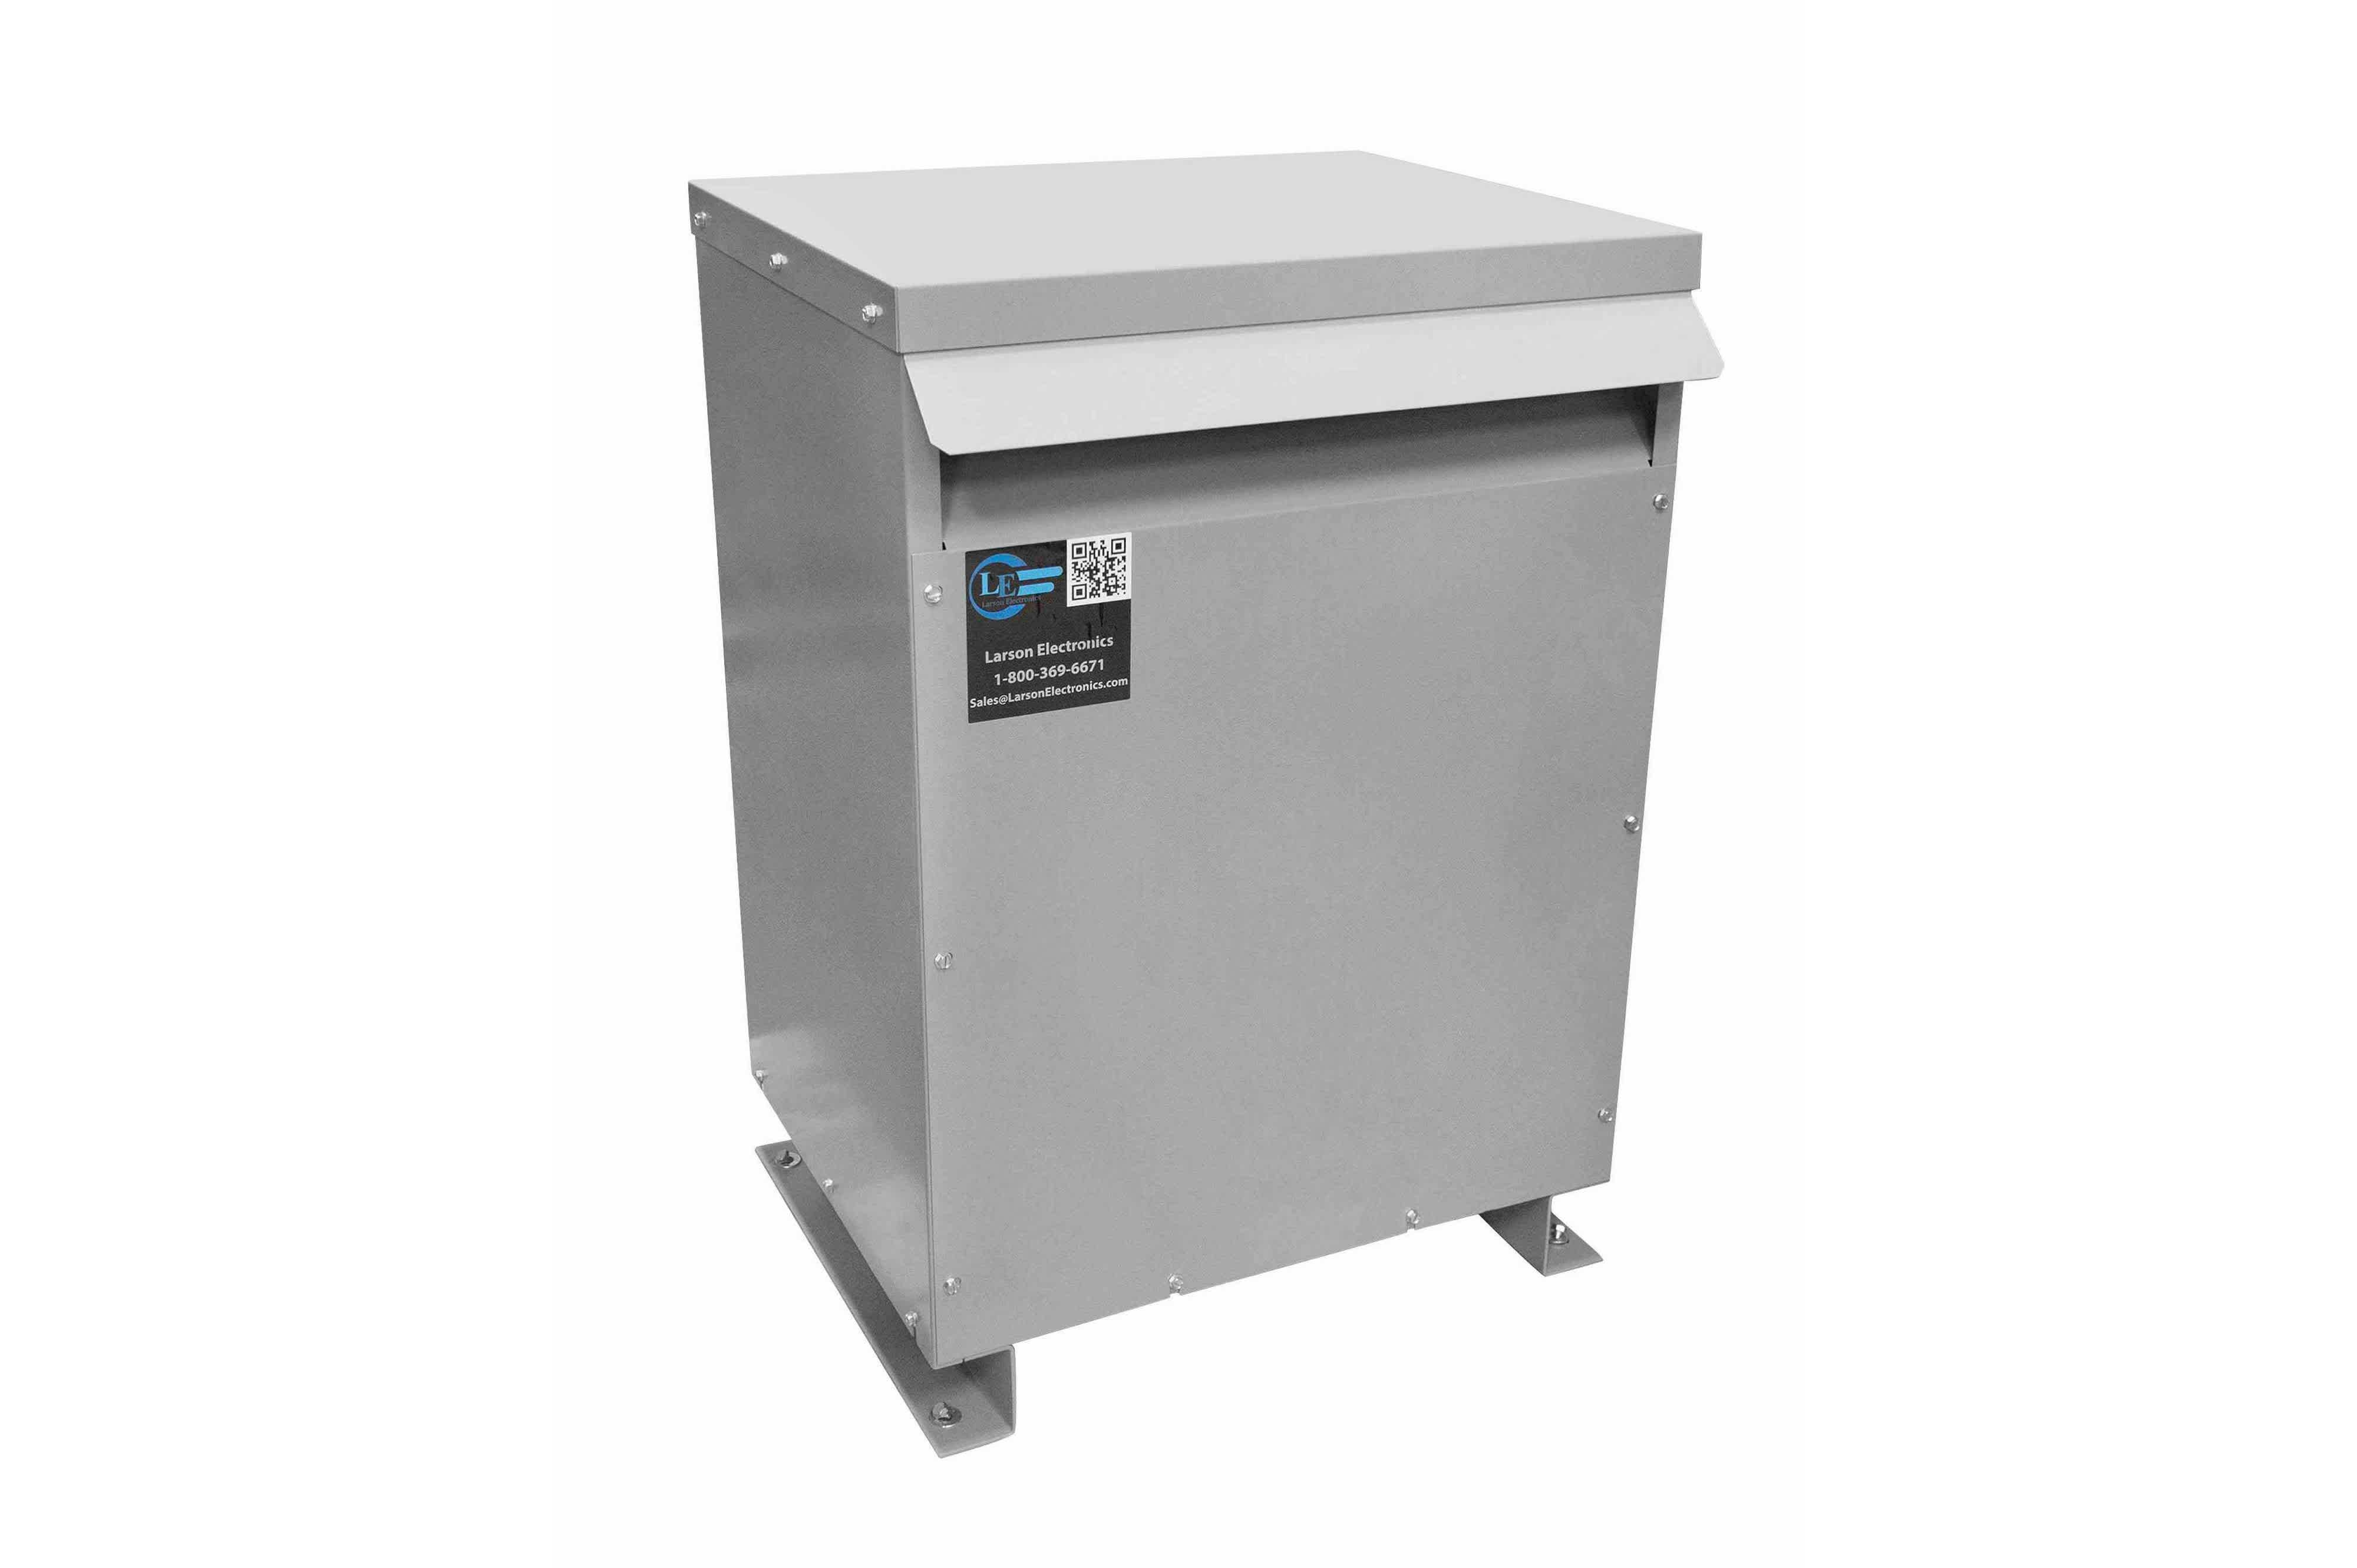 80 kVA 3PH Isolation Transformer, 575V Wye Primary, 400V Delta Secondary, N3R, Ventilated, 60 Hz